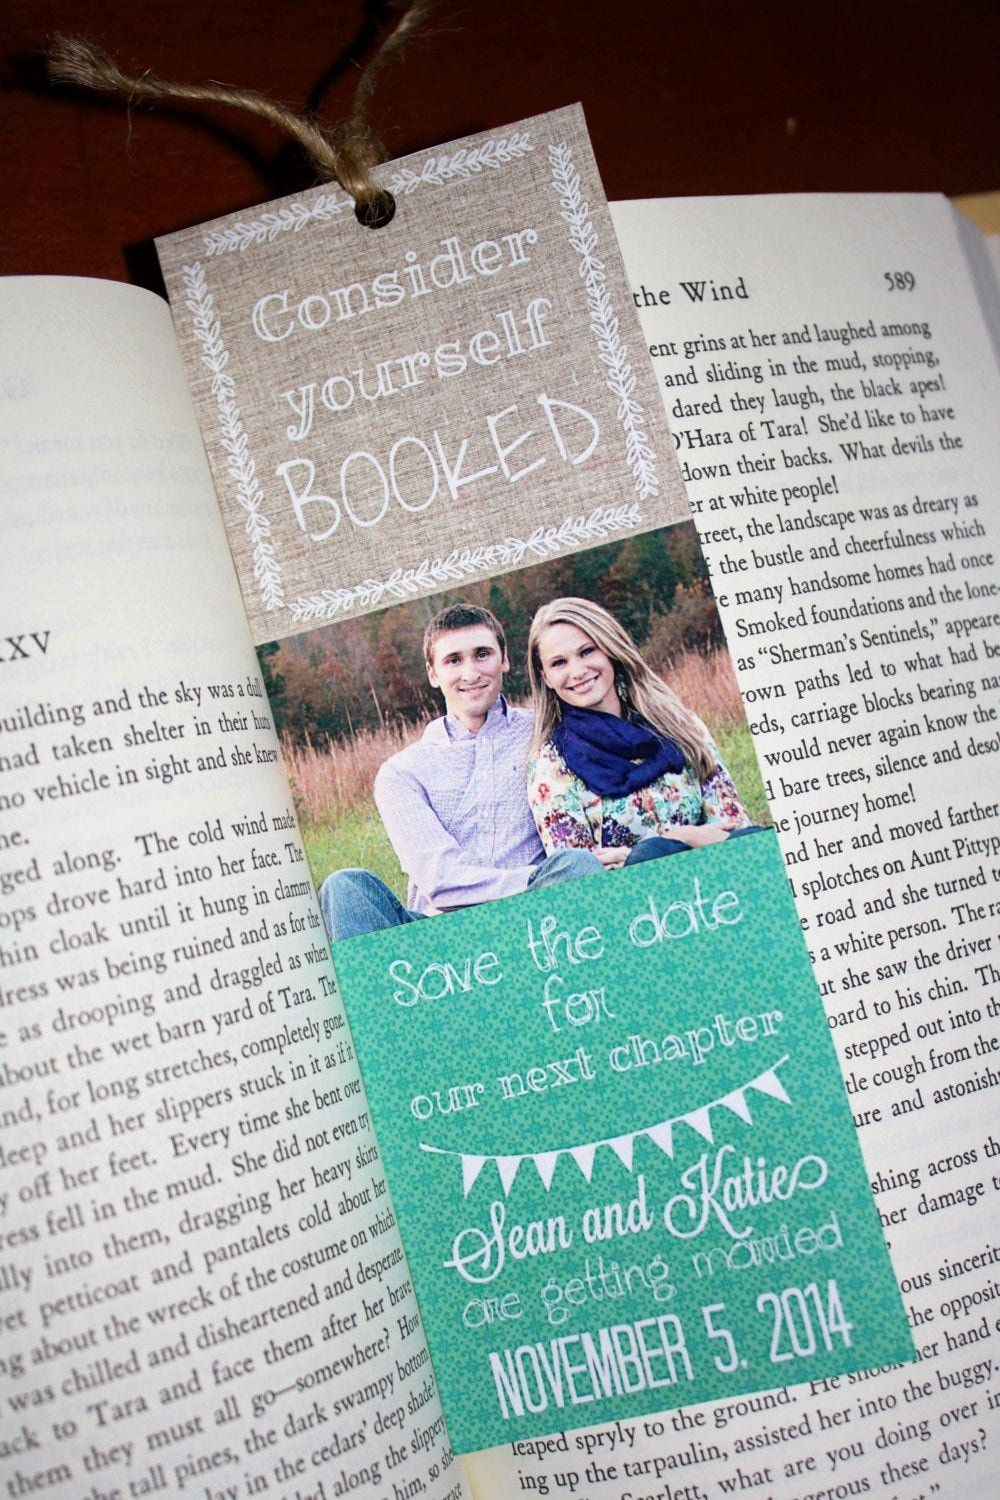 Bookmark Save the Date New Save the Date Bookmarks – Custom Save the Dates – Literary Library Weddings Custom Colors and